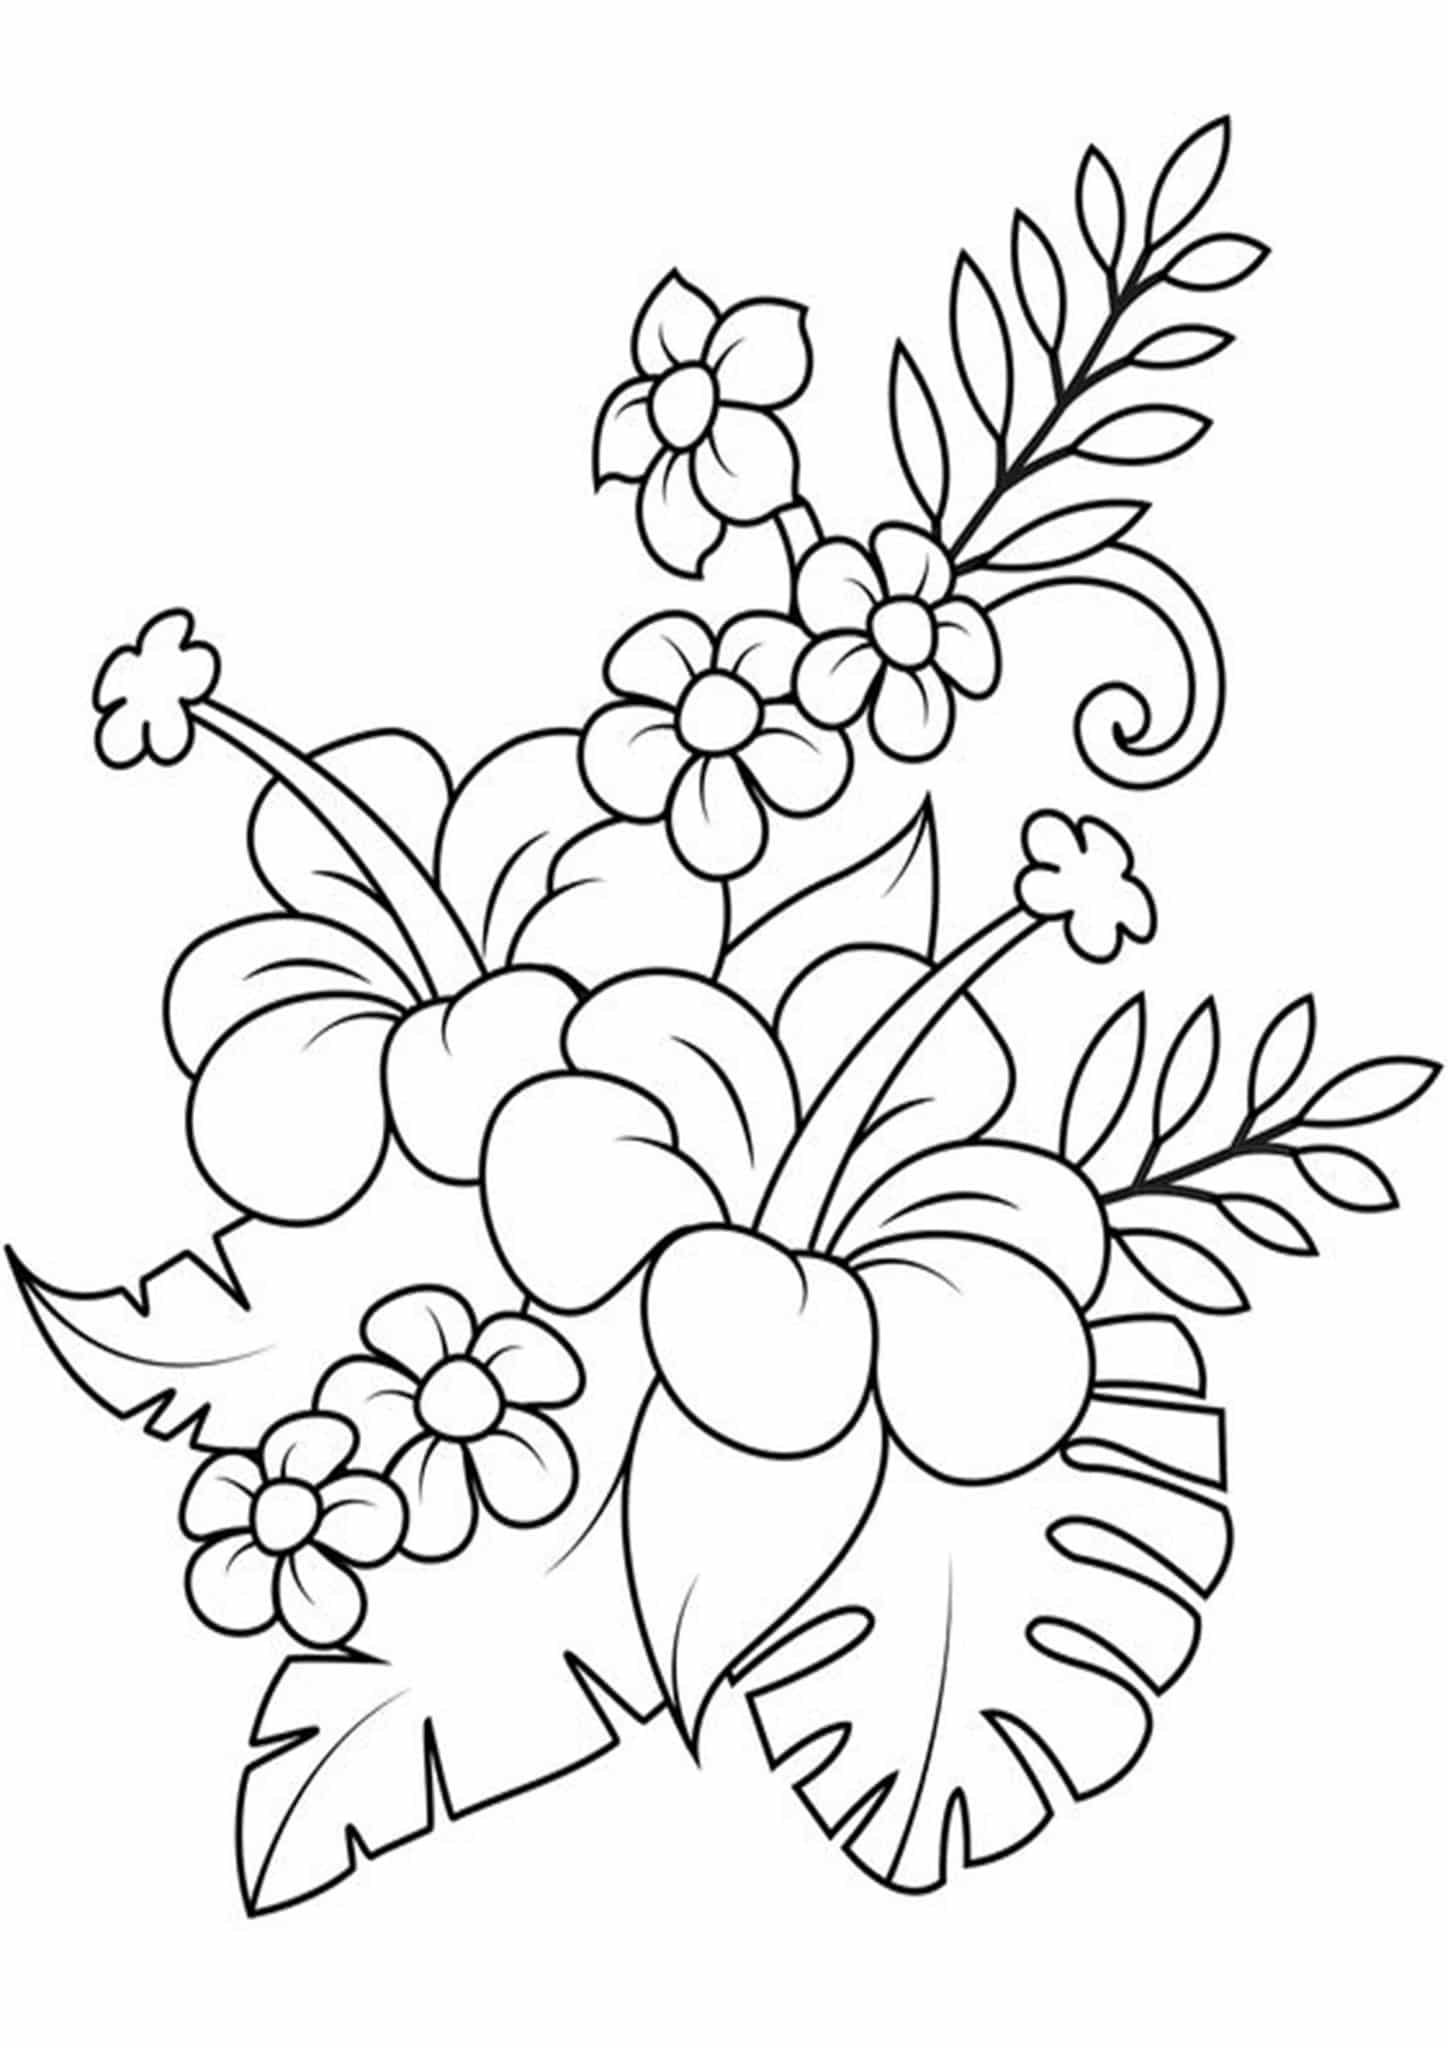 coloring pages flowers spring flowers coloring pages printable pages flowers coloring